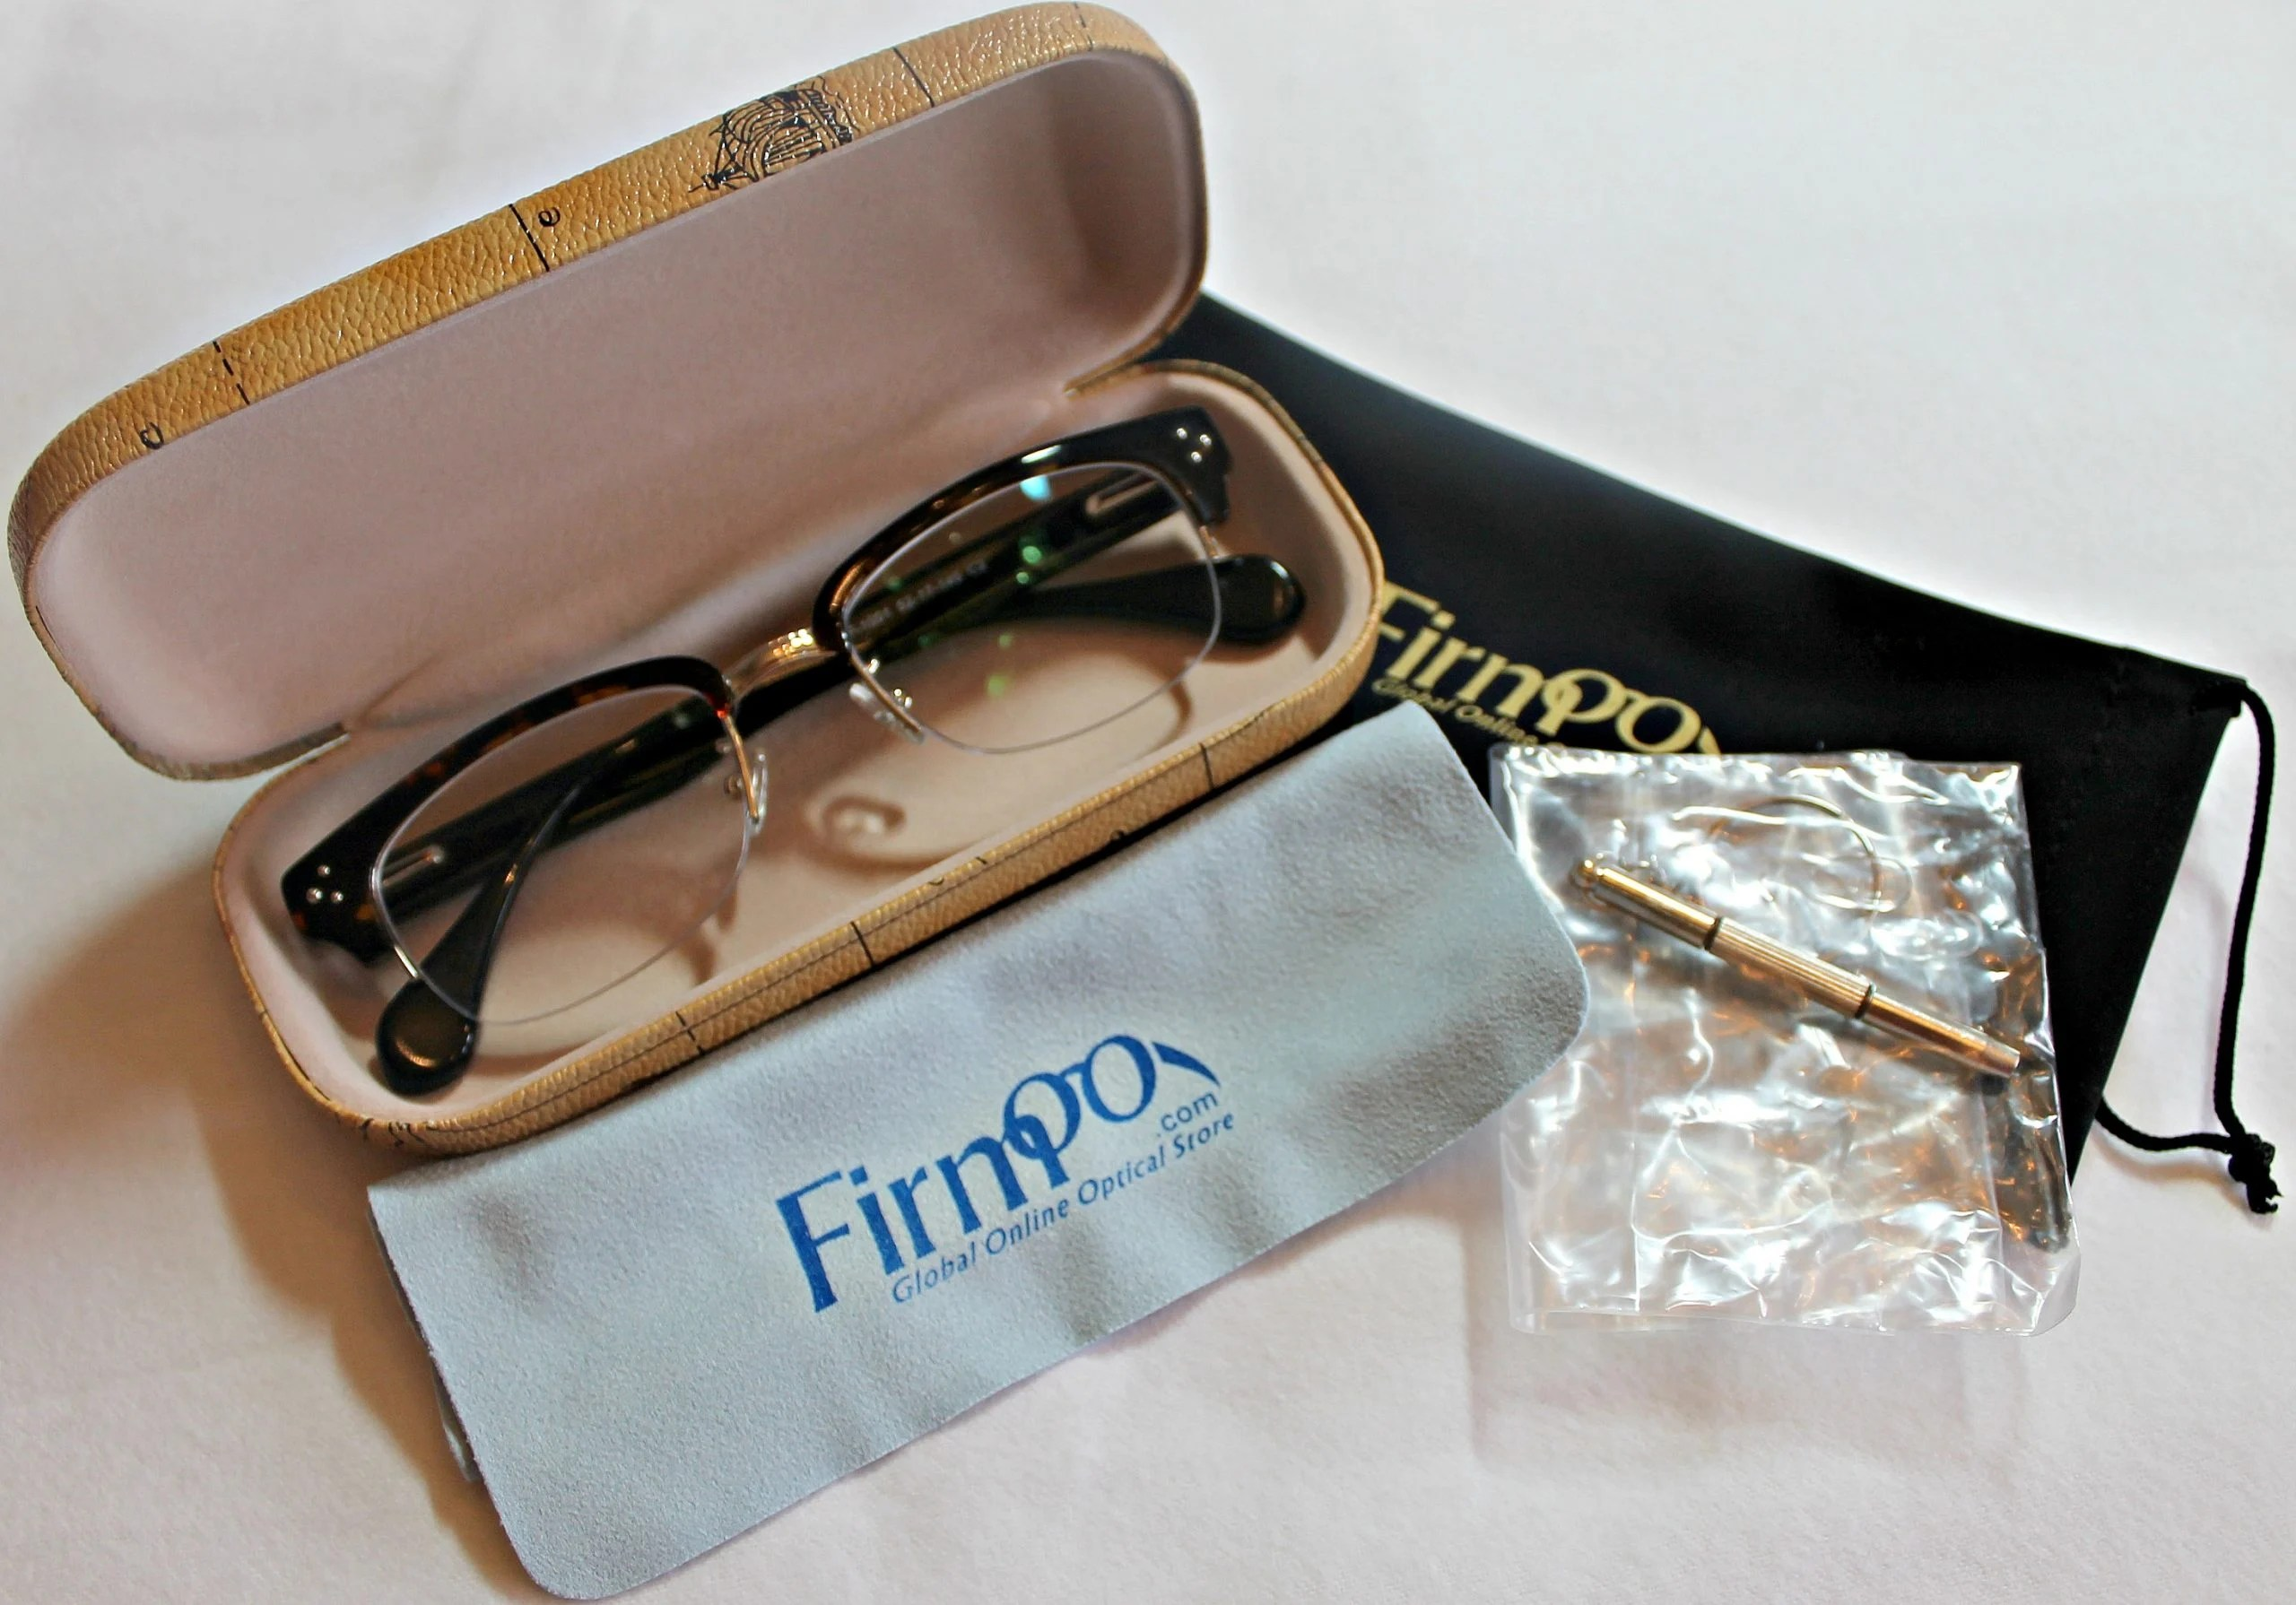 e240b868d1 Firmoo Eyeglasses Review